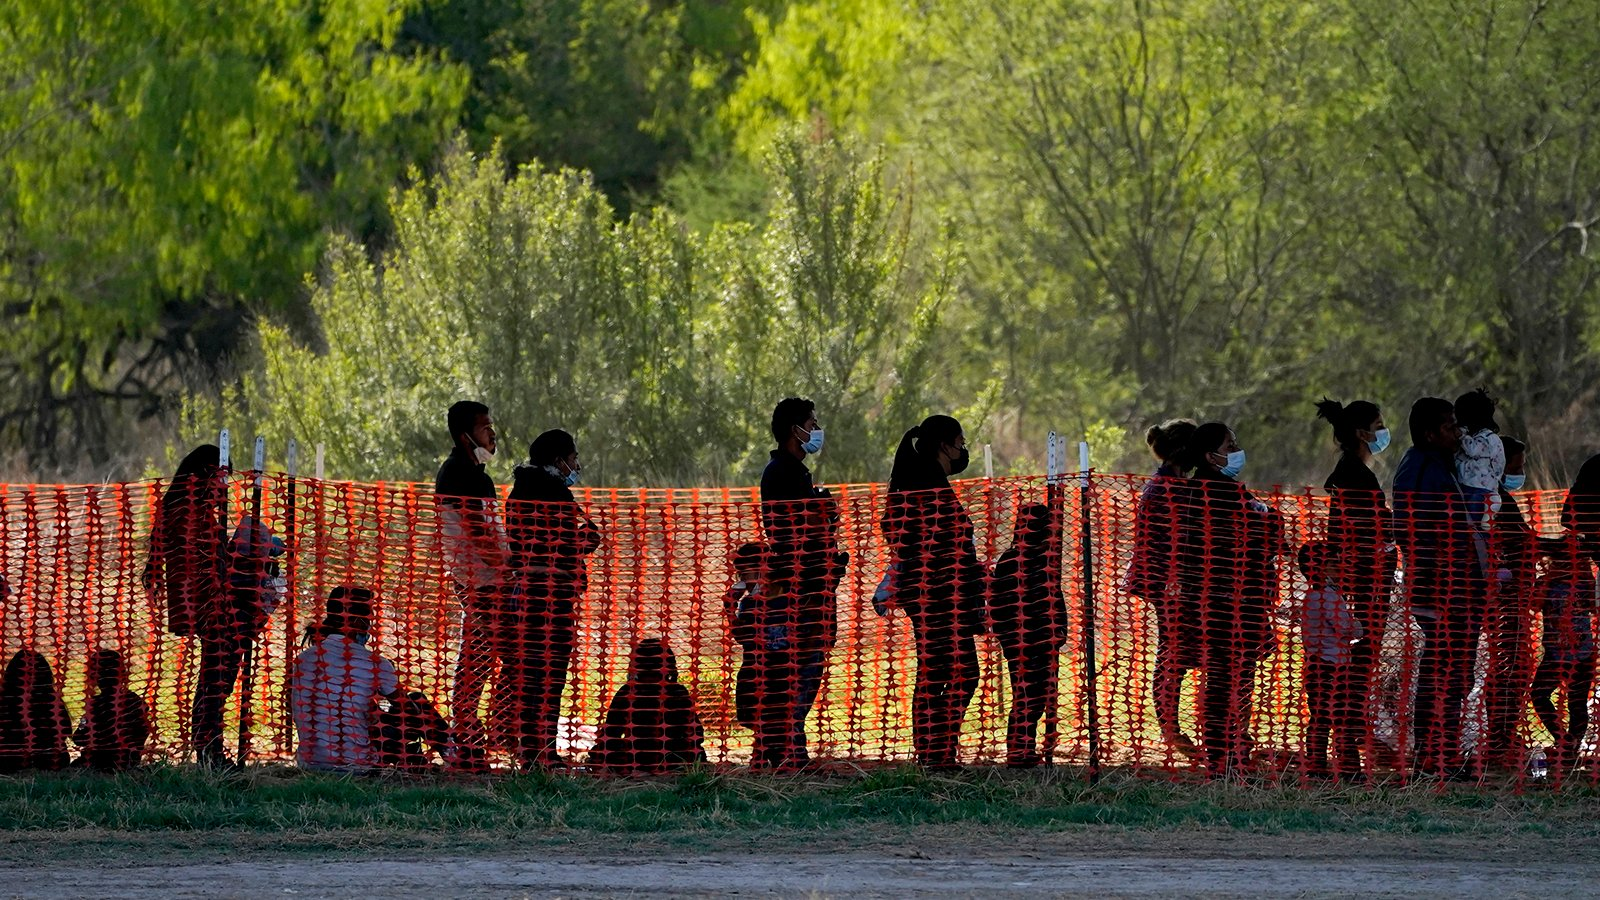 In this March 19, 2021, file photo, migrants are seen in custody at a U.S. Customs and Border Protection processing area under the Anzalduas International Bridge, in Mission, Texas. U.S. authorities say they picked up nearly 19,000 children traveling alone across the Mexican border in March. It's the largest monthly number ever recorded and a major test for President Joe Biden as he reverses many of his predecessor's hardline immigration tactics. (AP Photo/Julio Cortez, File)